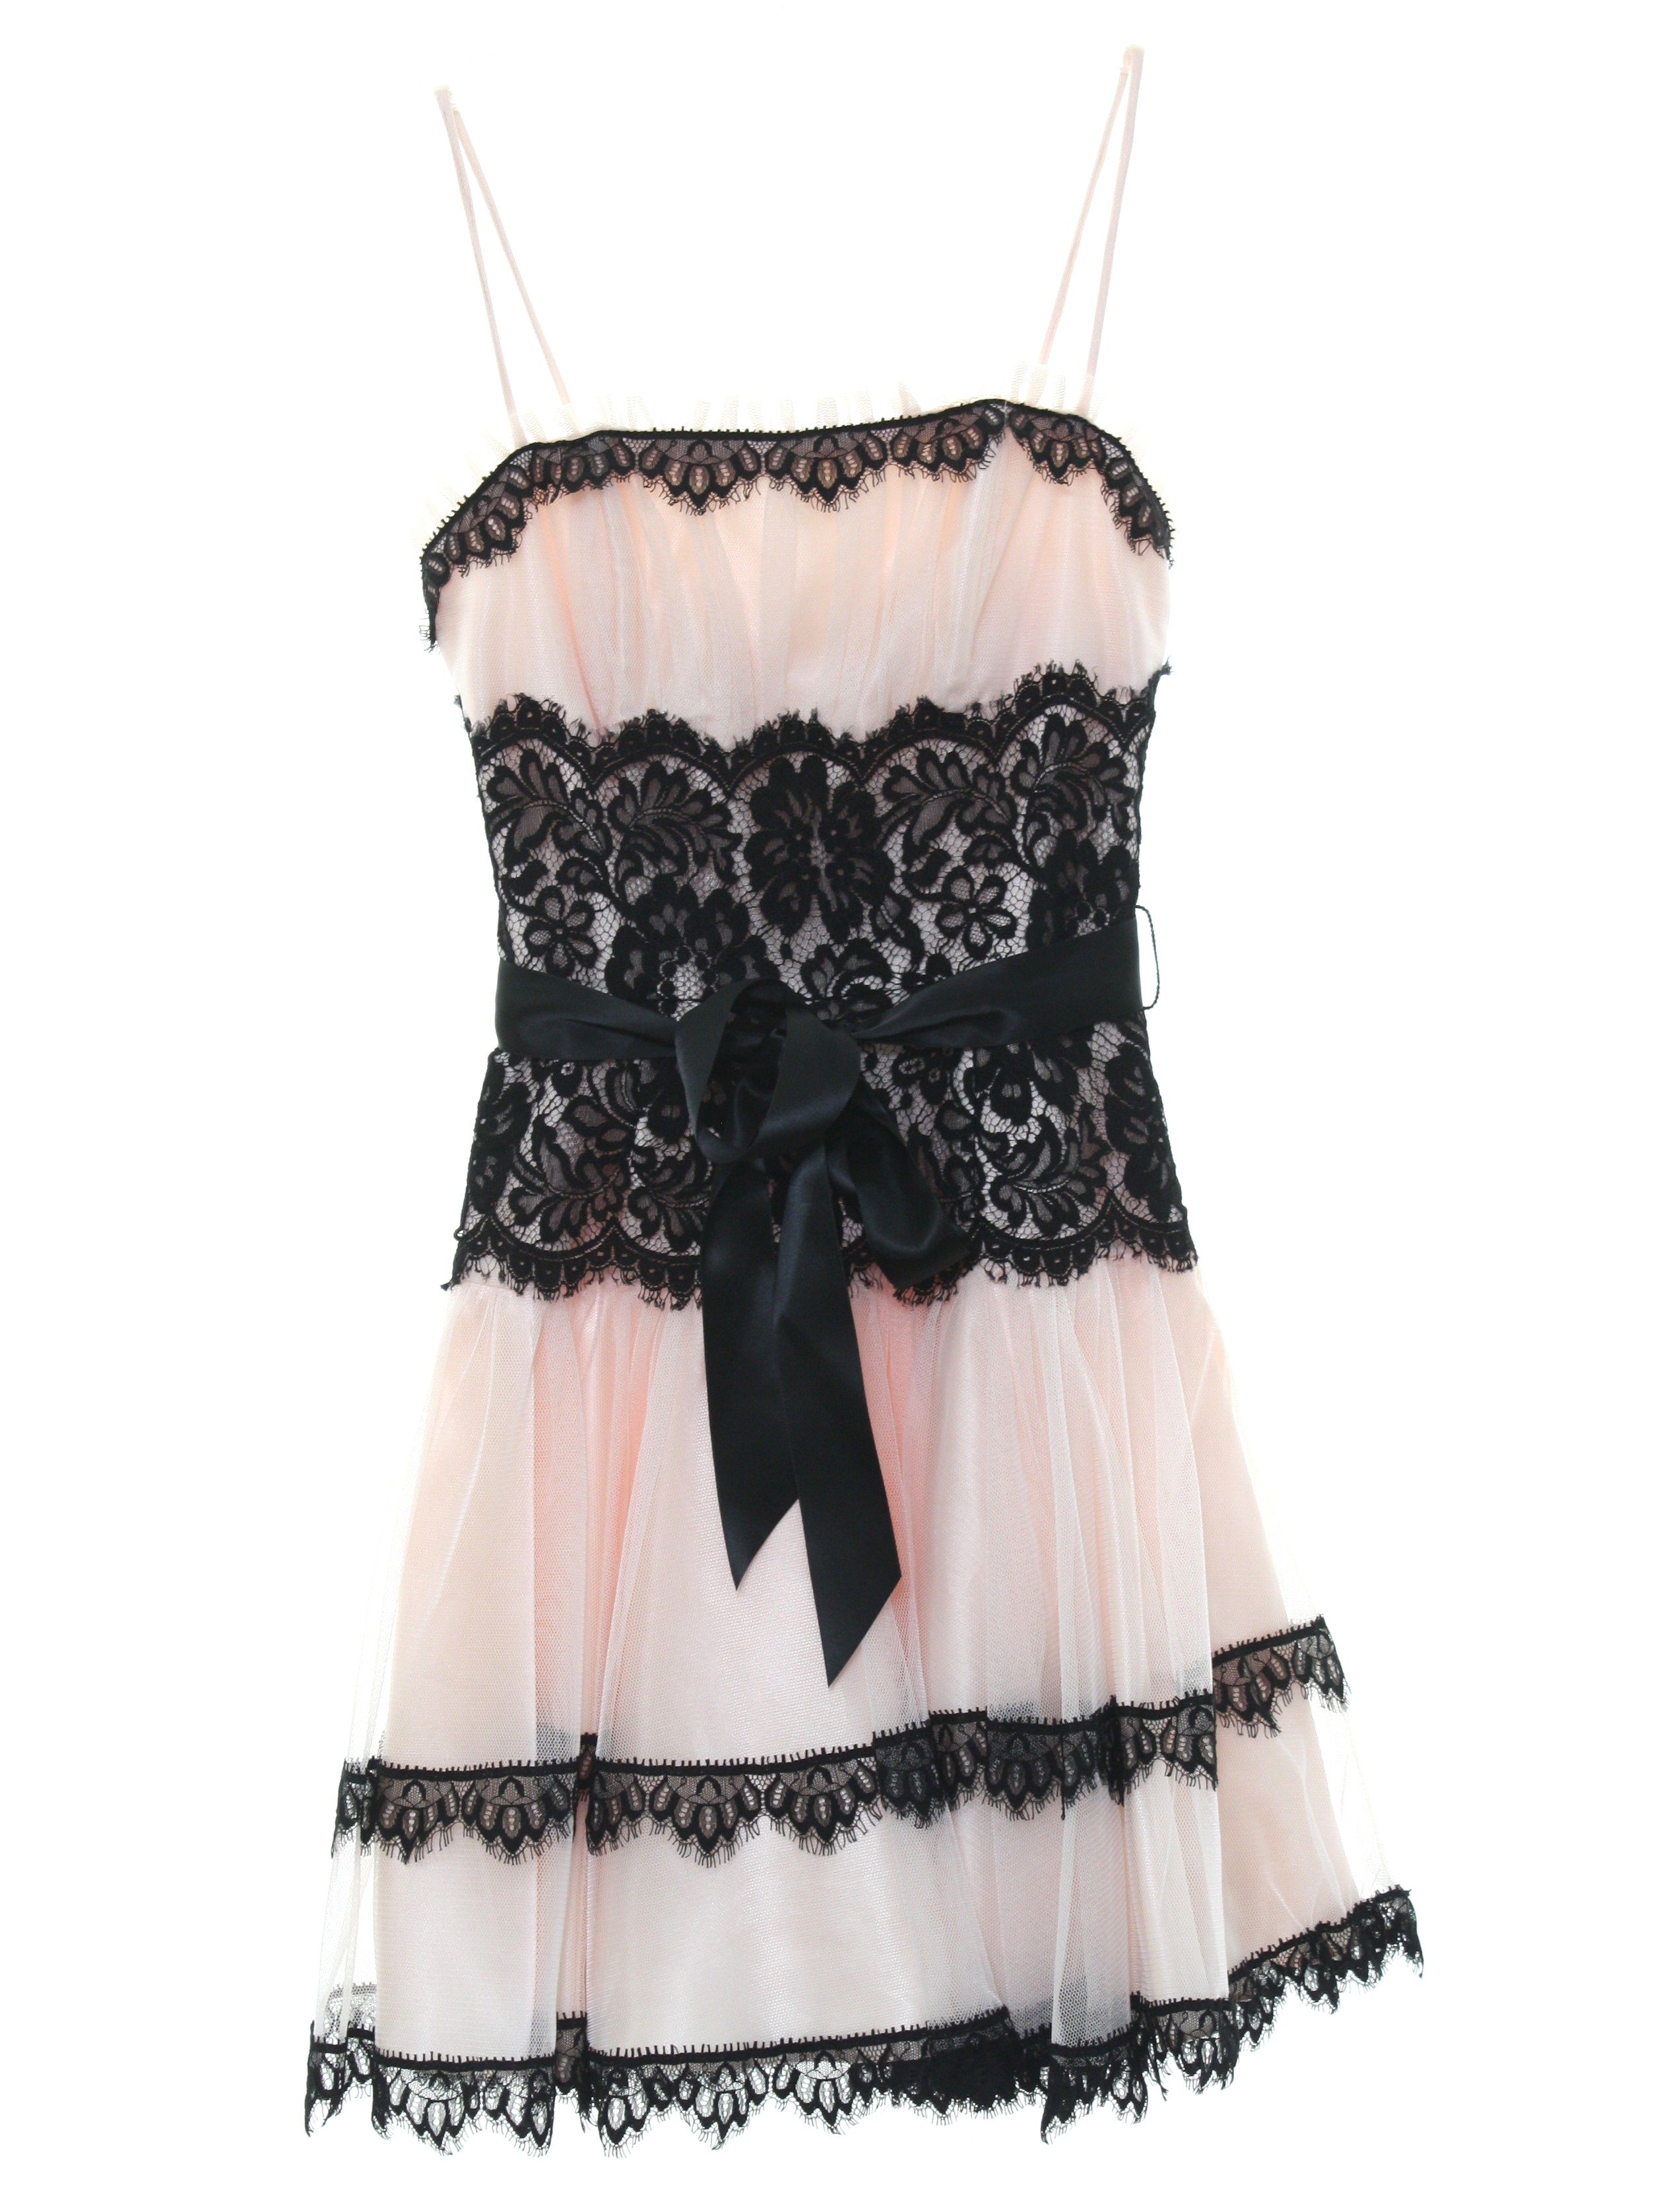 5a4f6d6bac7 1990 s Jessica McClintock Mini Prom Or Cocktail Dress  58.00 In stock. Item  No. 343023